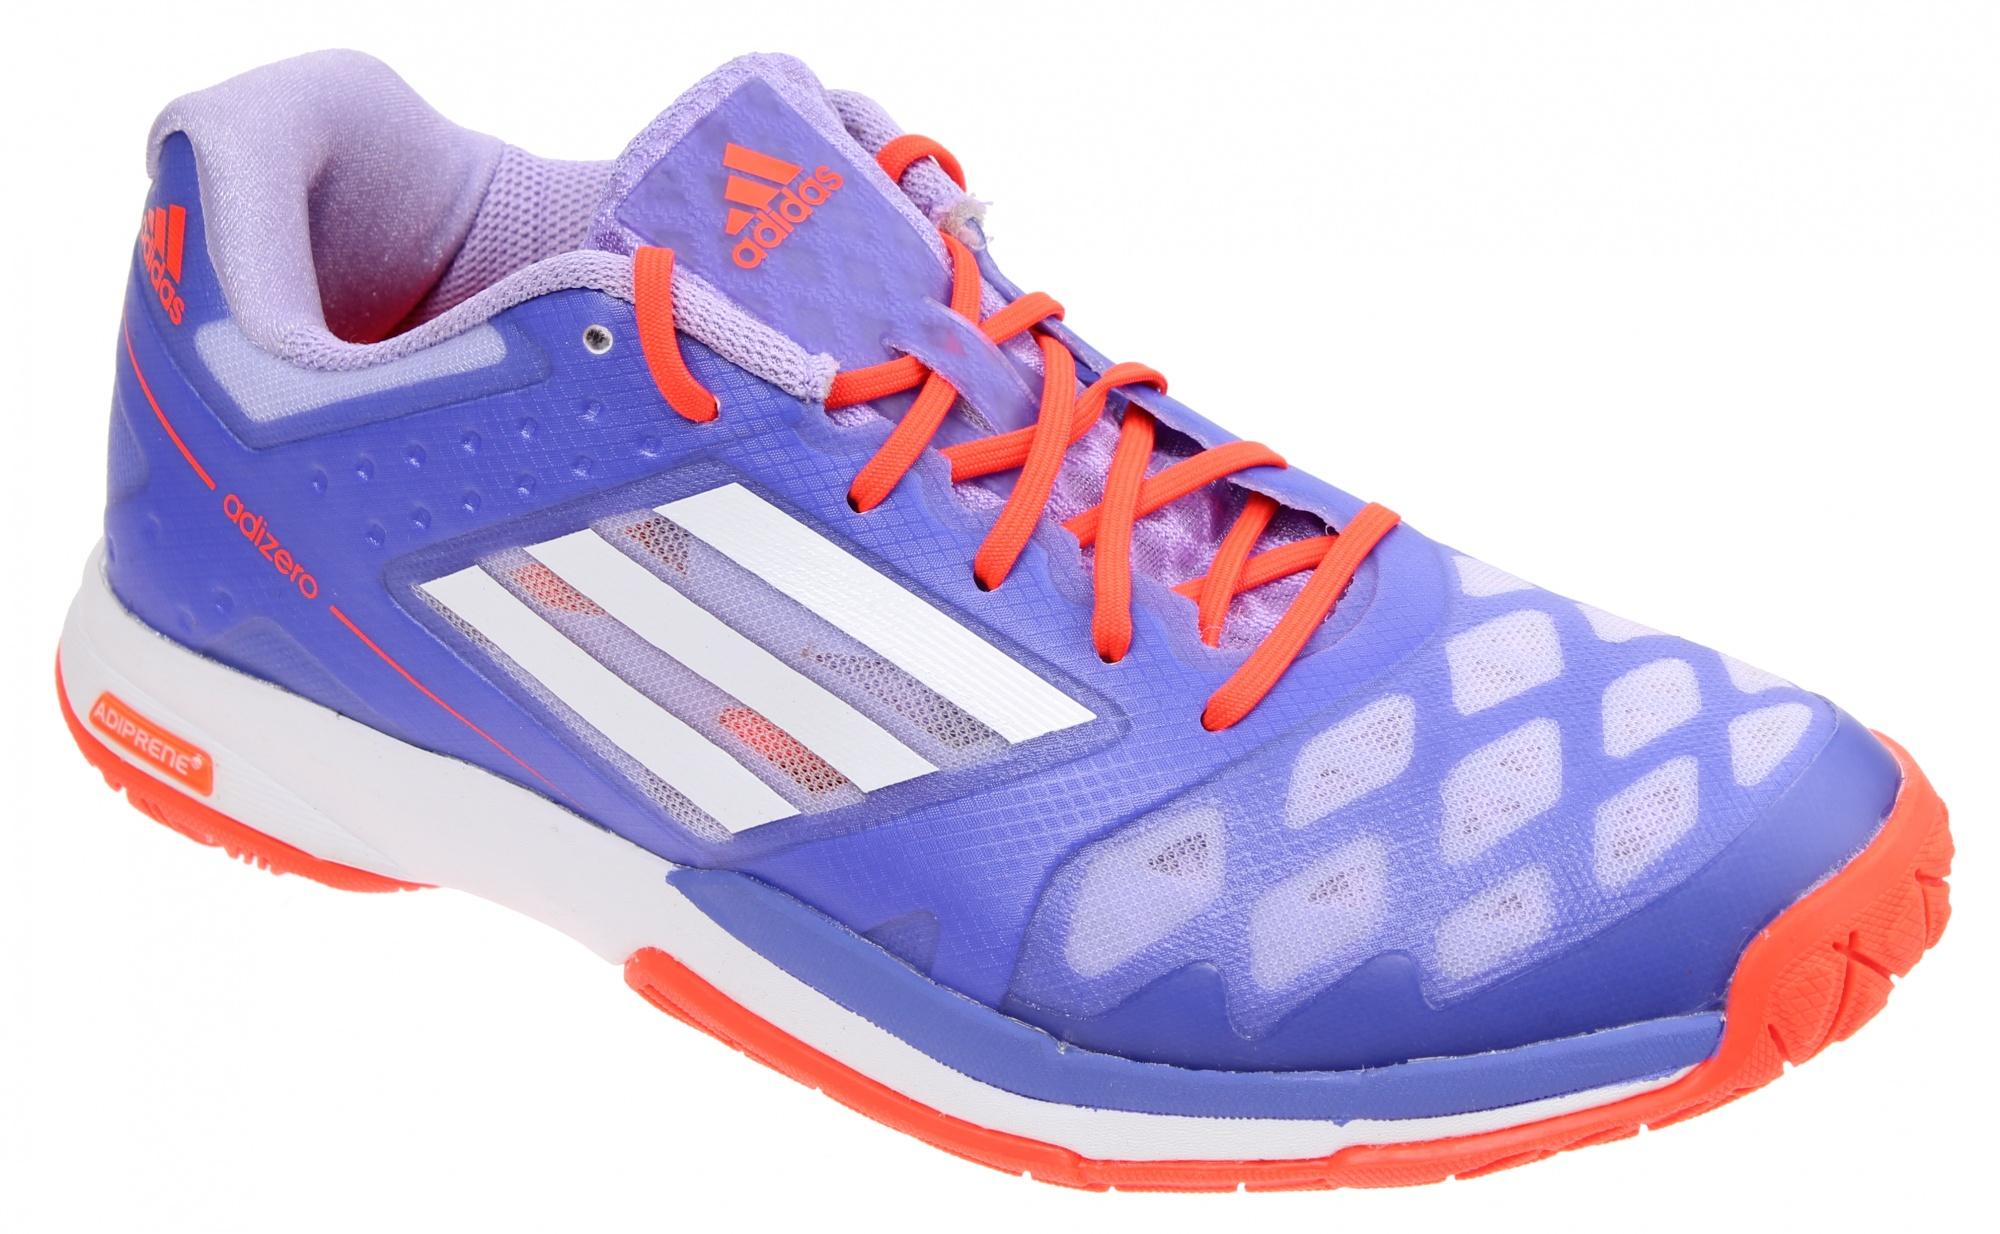 super popular a2994 2864a adidas badminton shoes Adizero Feather Ladies purple